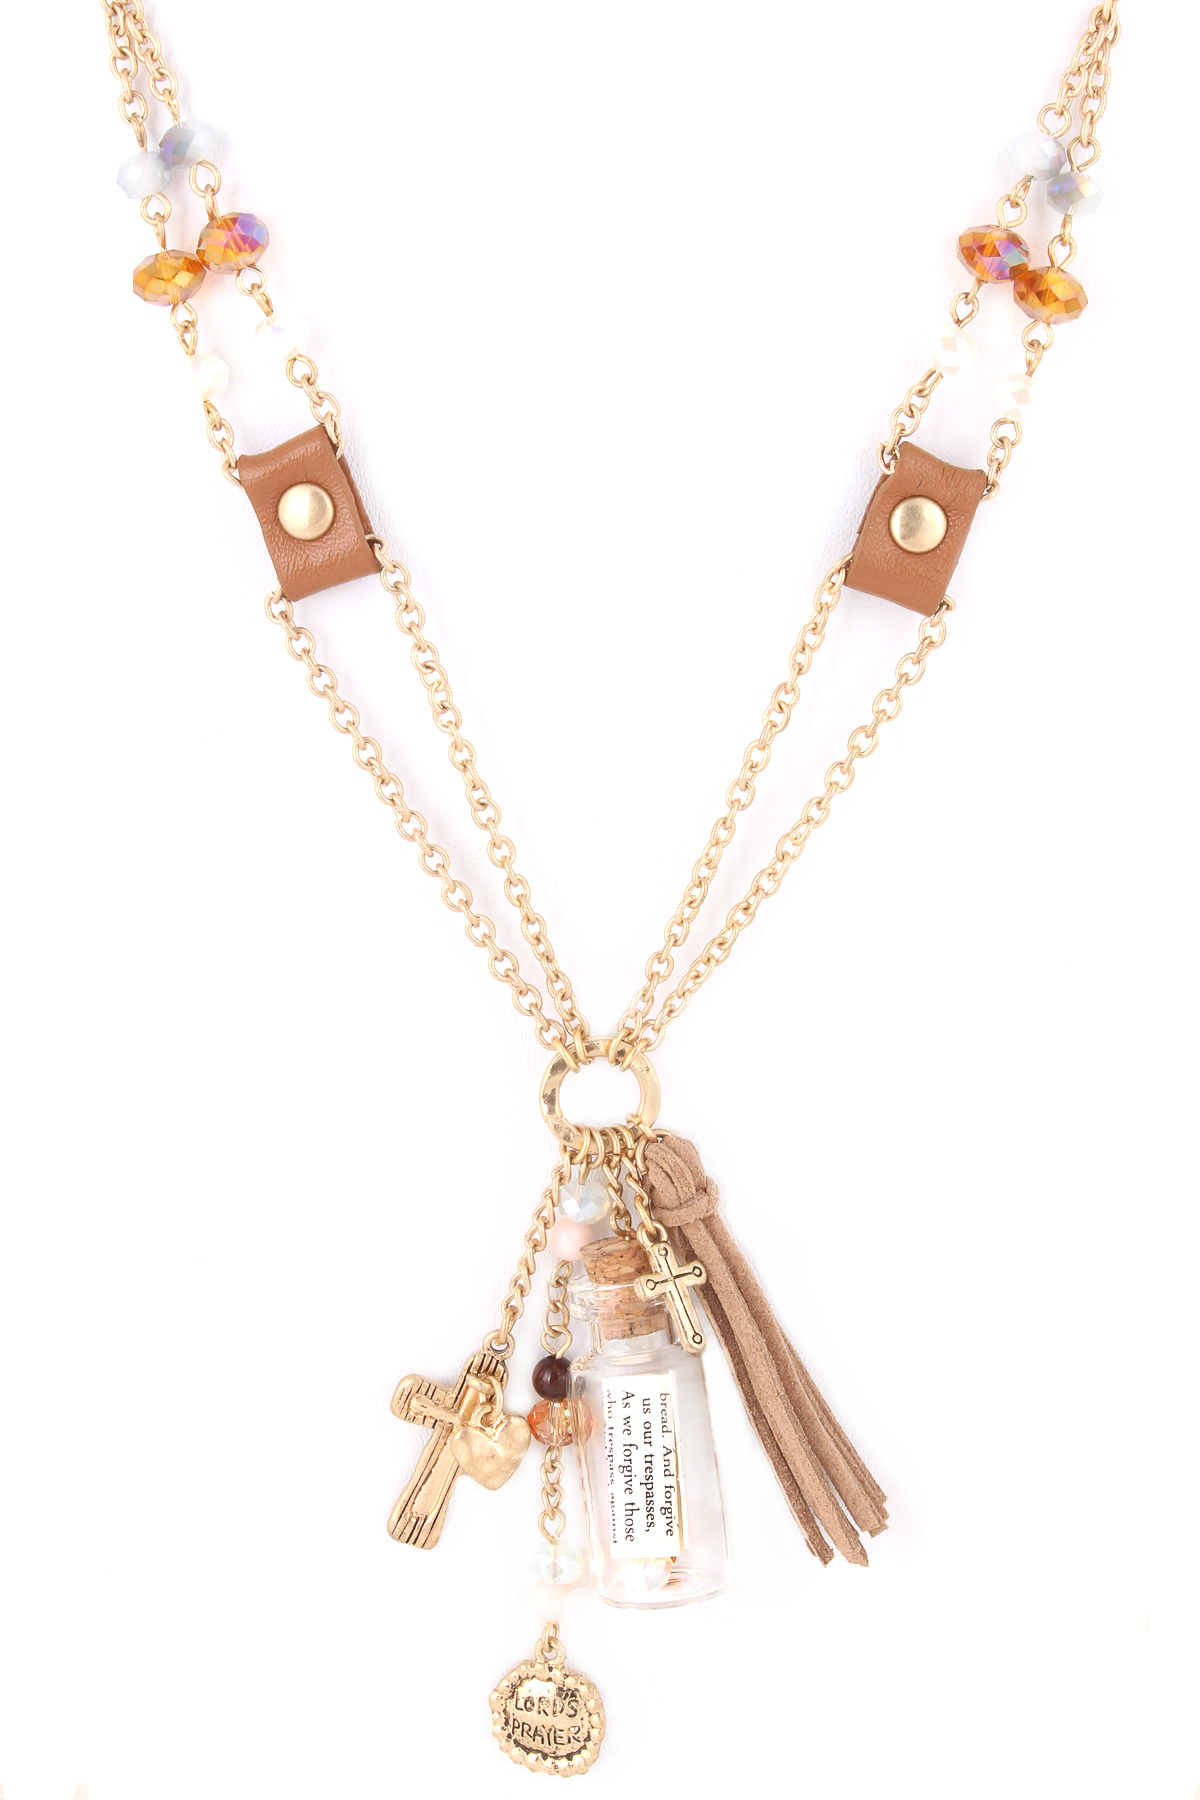 message in a bottle lord s prayer necklace necklaces